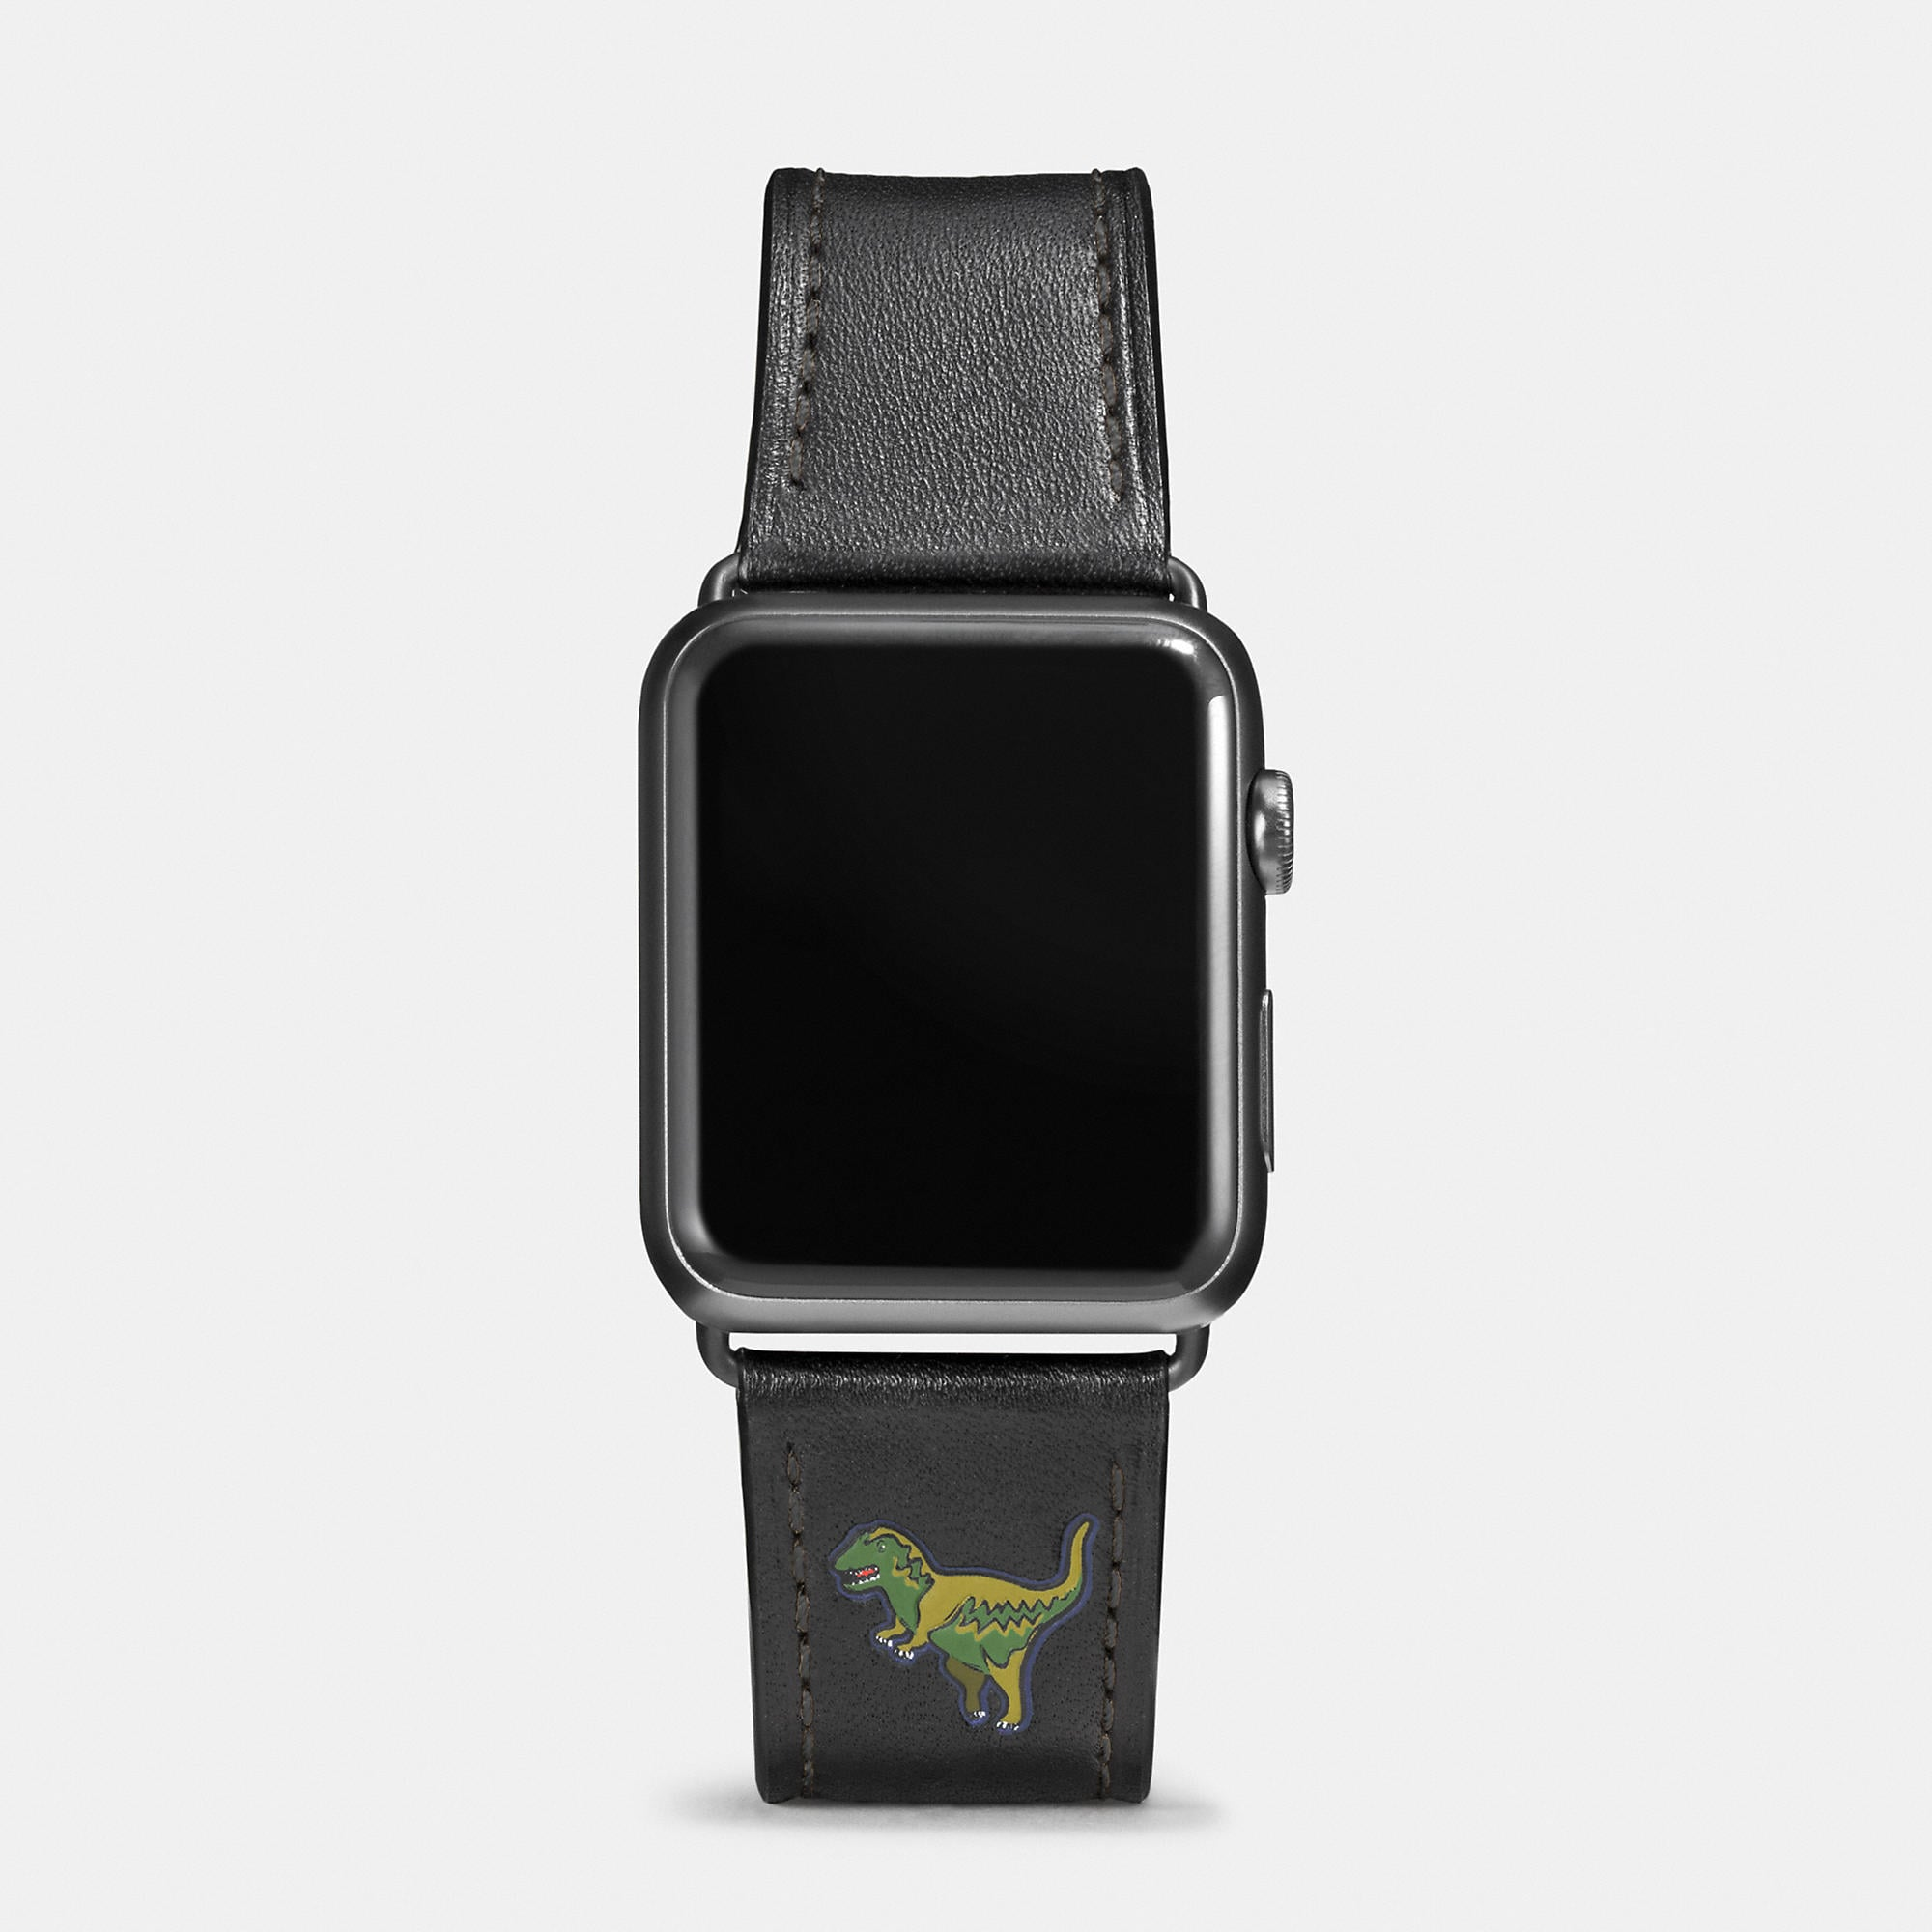 Coach Apple Watch Rexy Leather Watch Strap